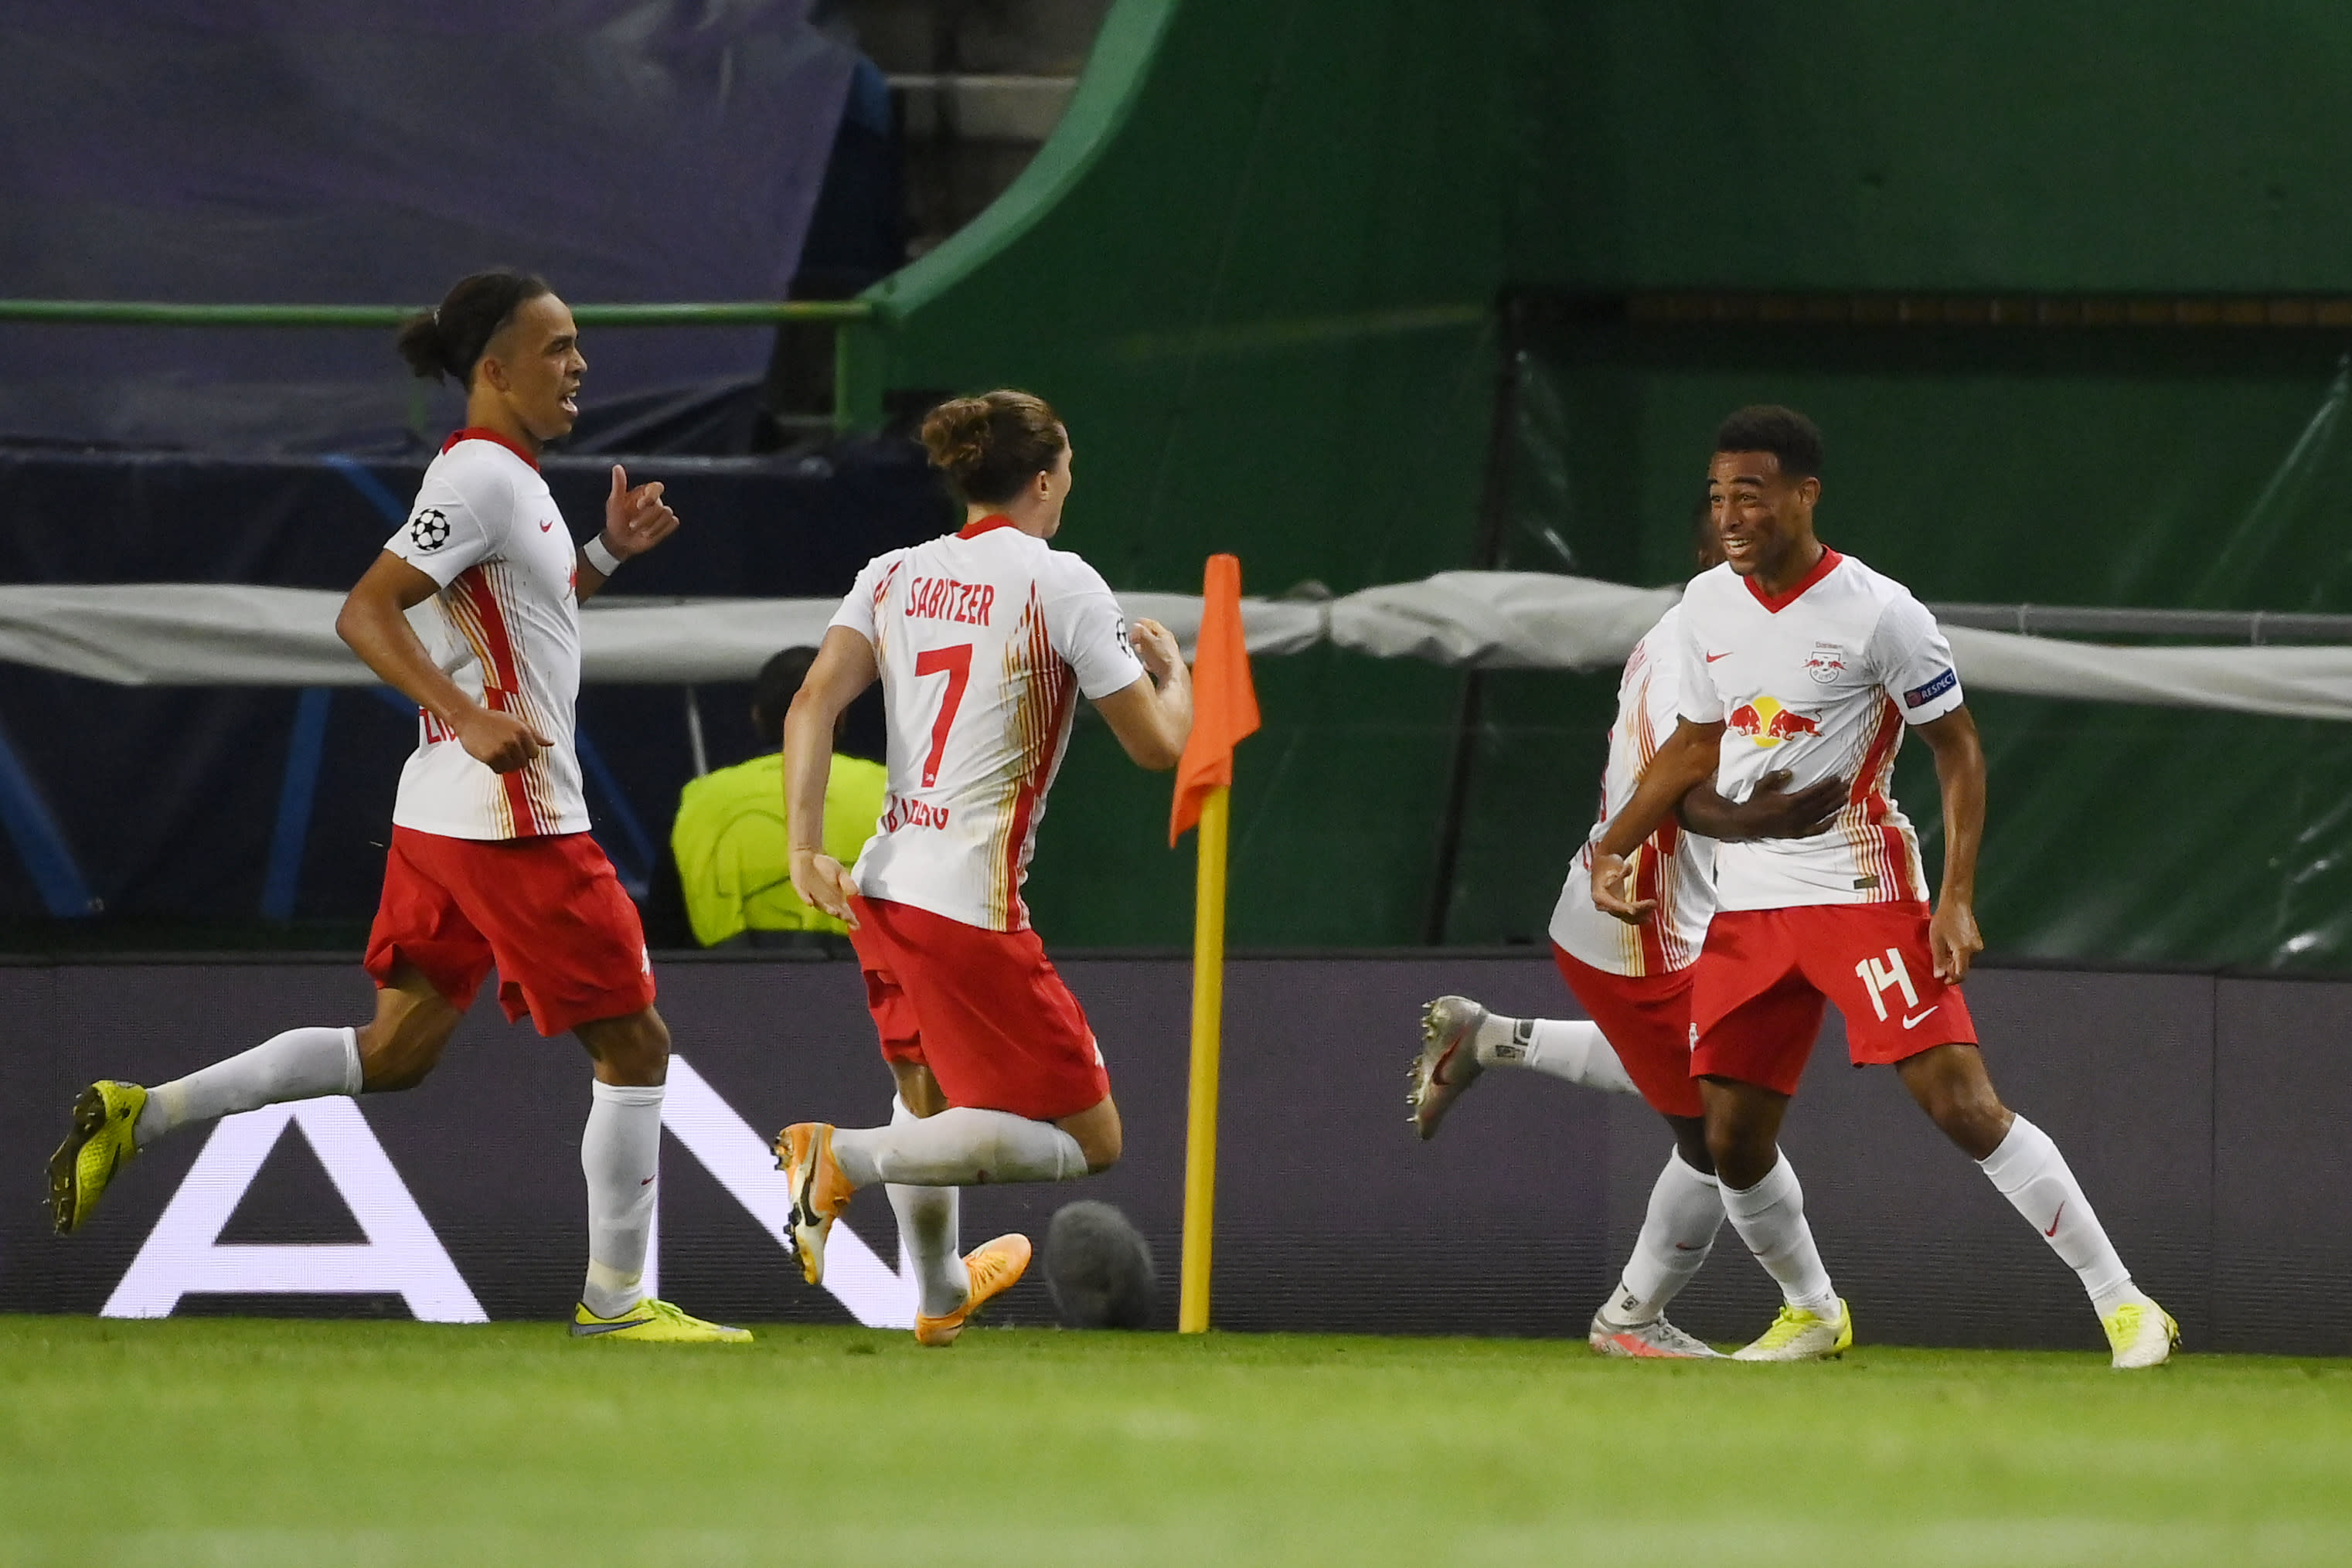 Champions League Late Goal By Usmnt S Tyler Adams Stuns Atletico Madrid Sends Rb Leipzig To Semis